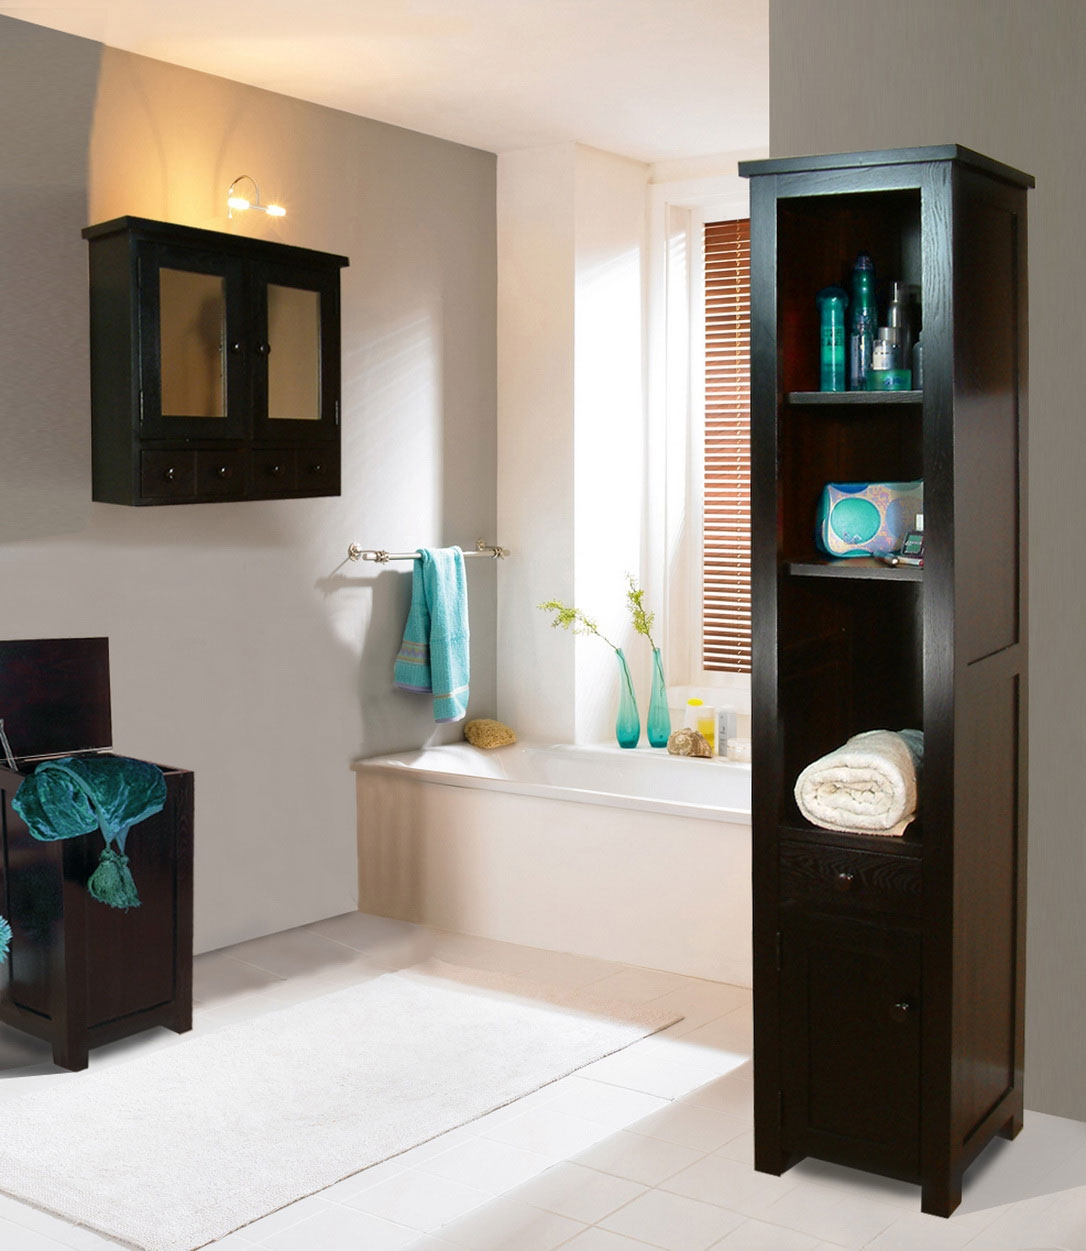 Permalink to Dark Wood Bathroom Wall Cabinets